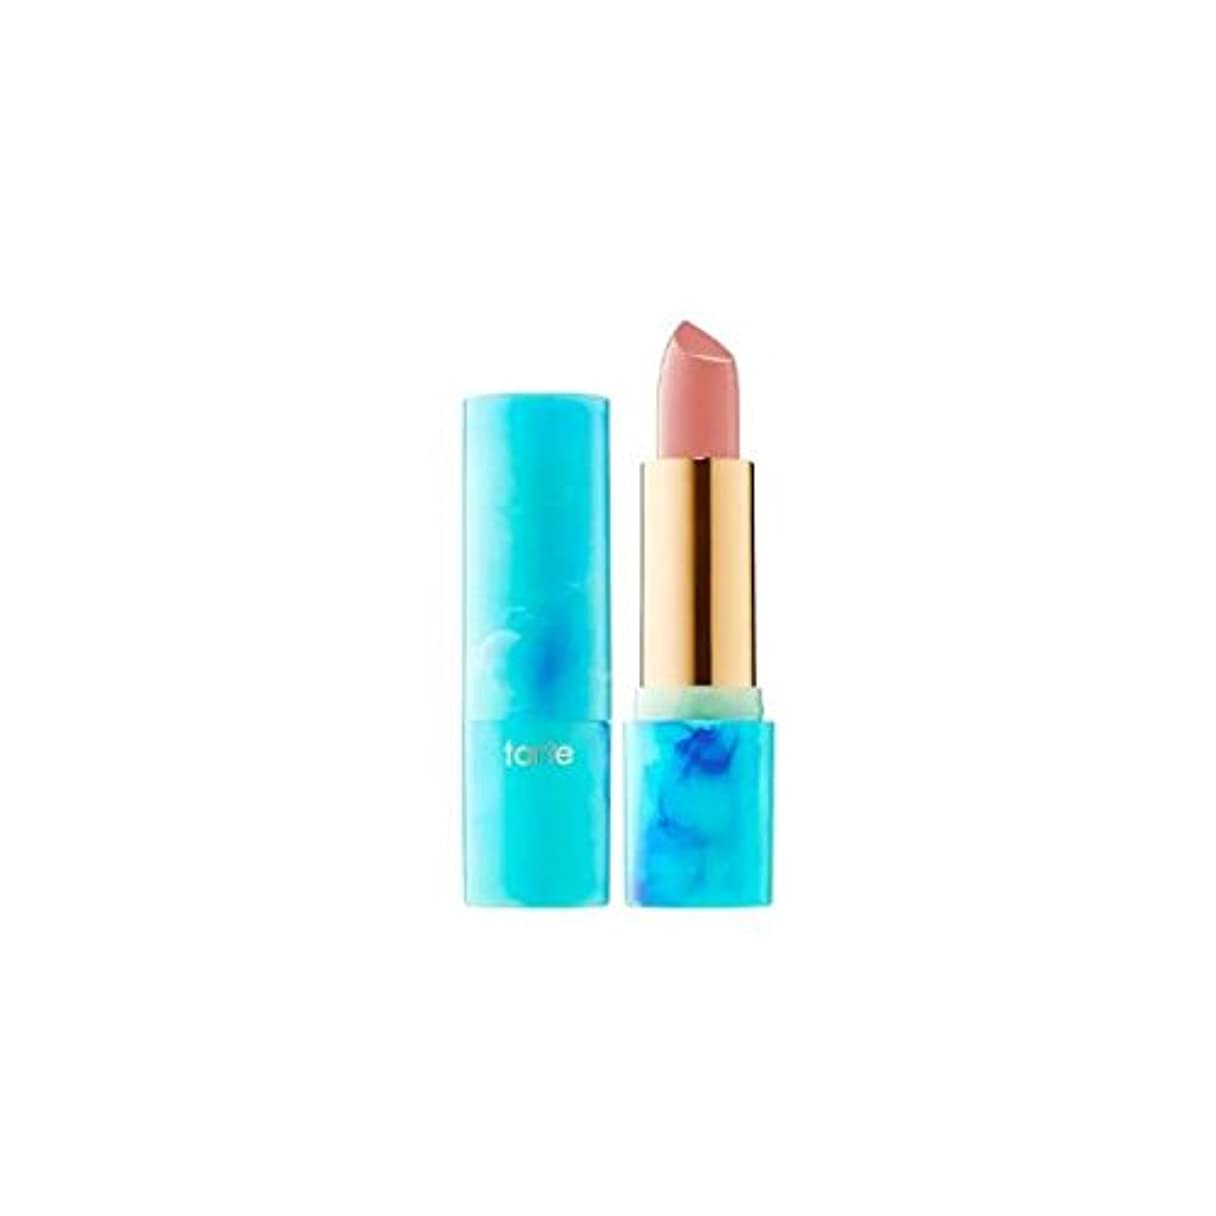 抽象化時間土器tarteタルト リップ Color Splash Lipstick - Rainforest of the Sea Collection Satin finish